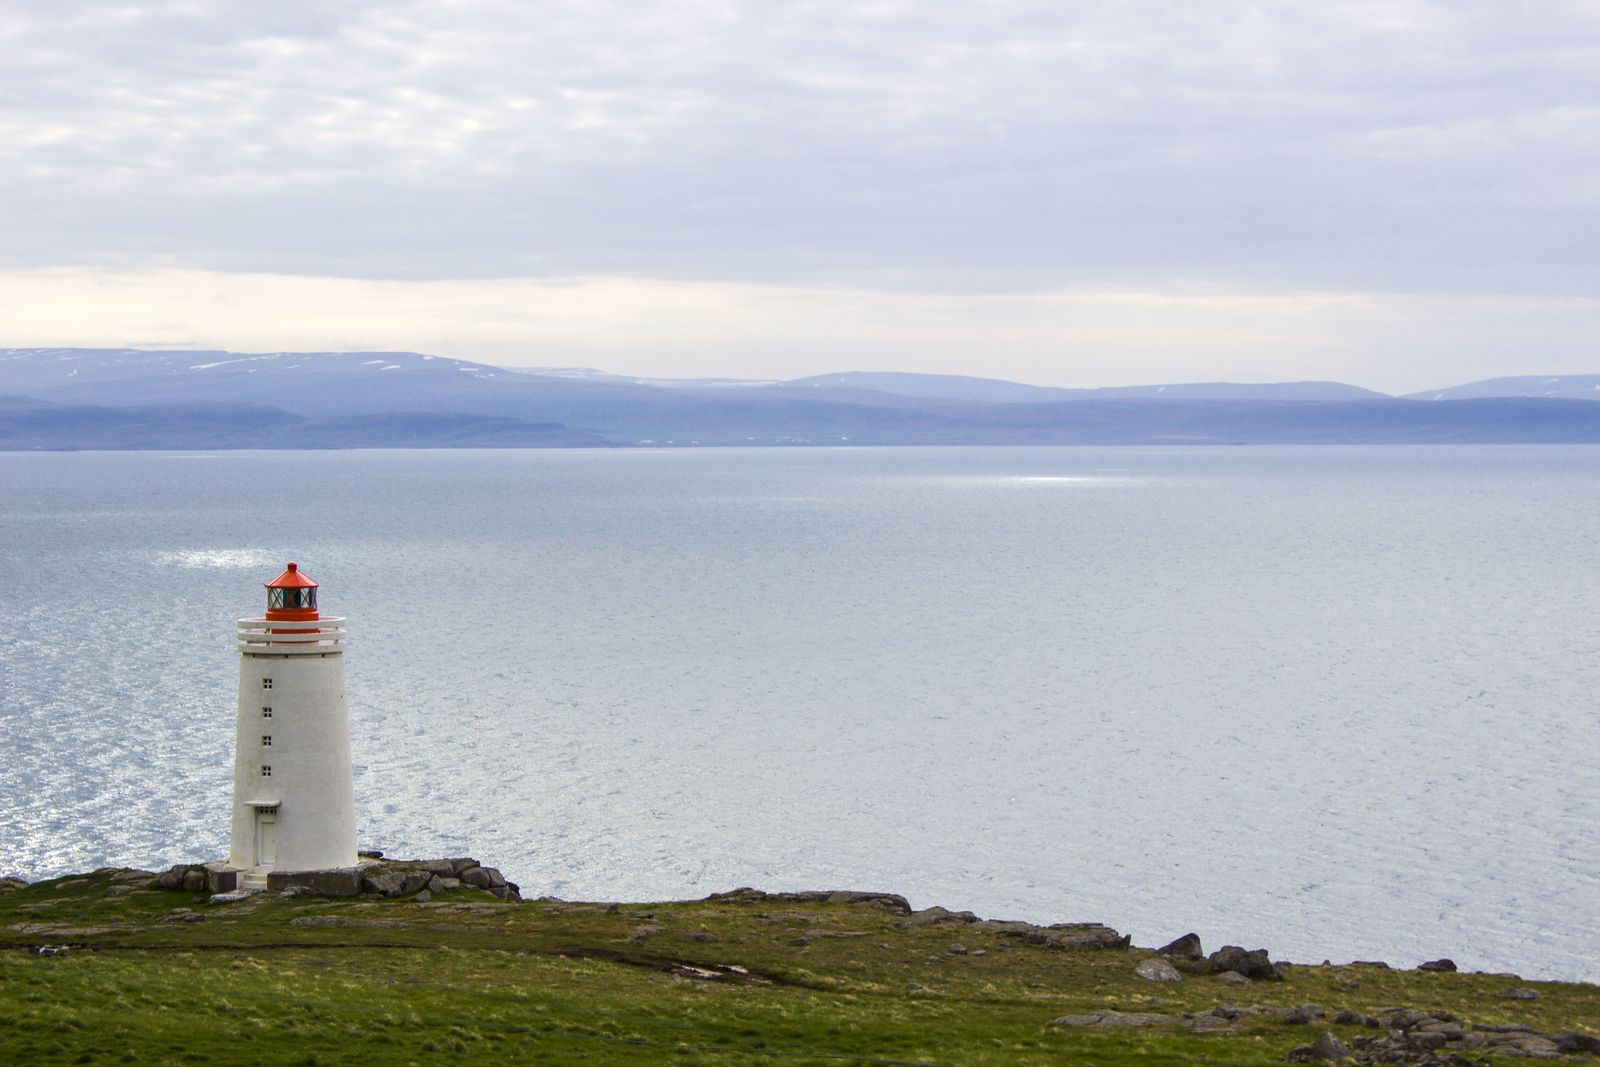 Iceland 2 Week Itinerary - A Complete Travel Guide - Iceland Travel Itinerary - Hvammstangi lighthouse